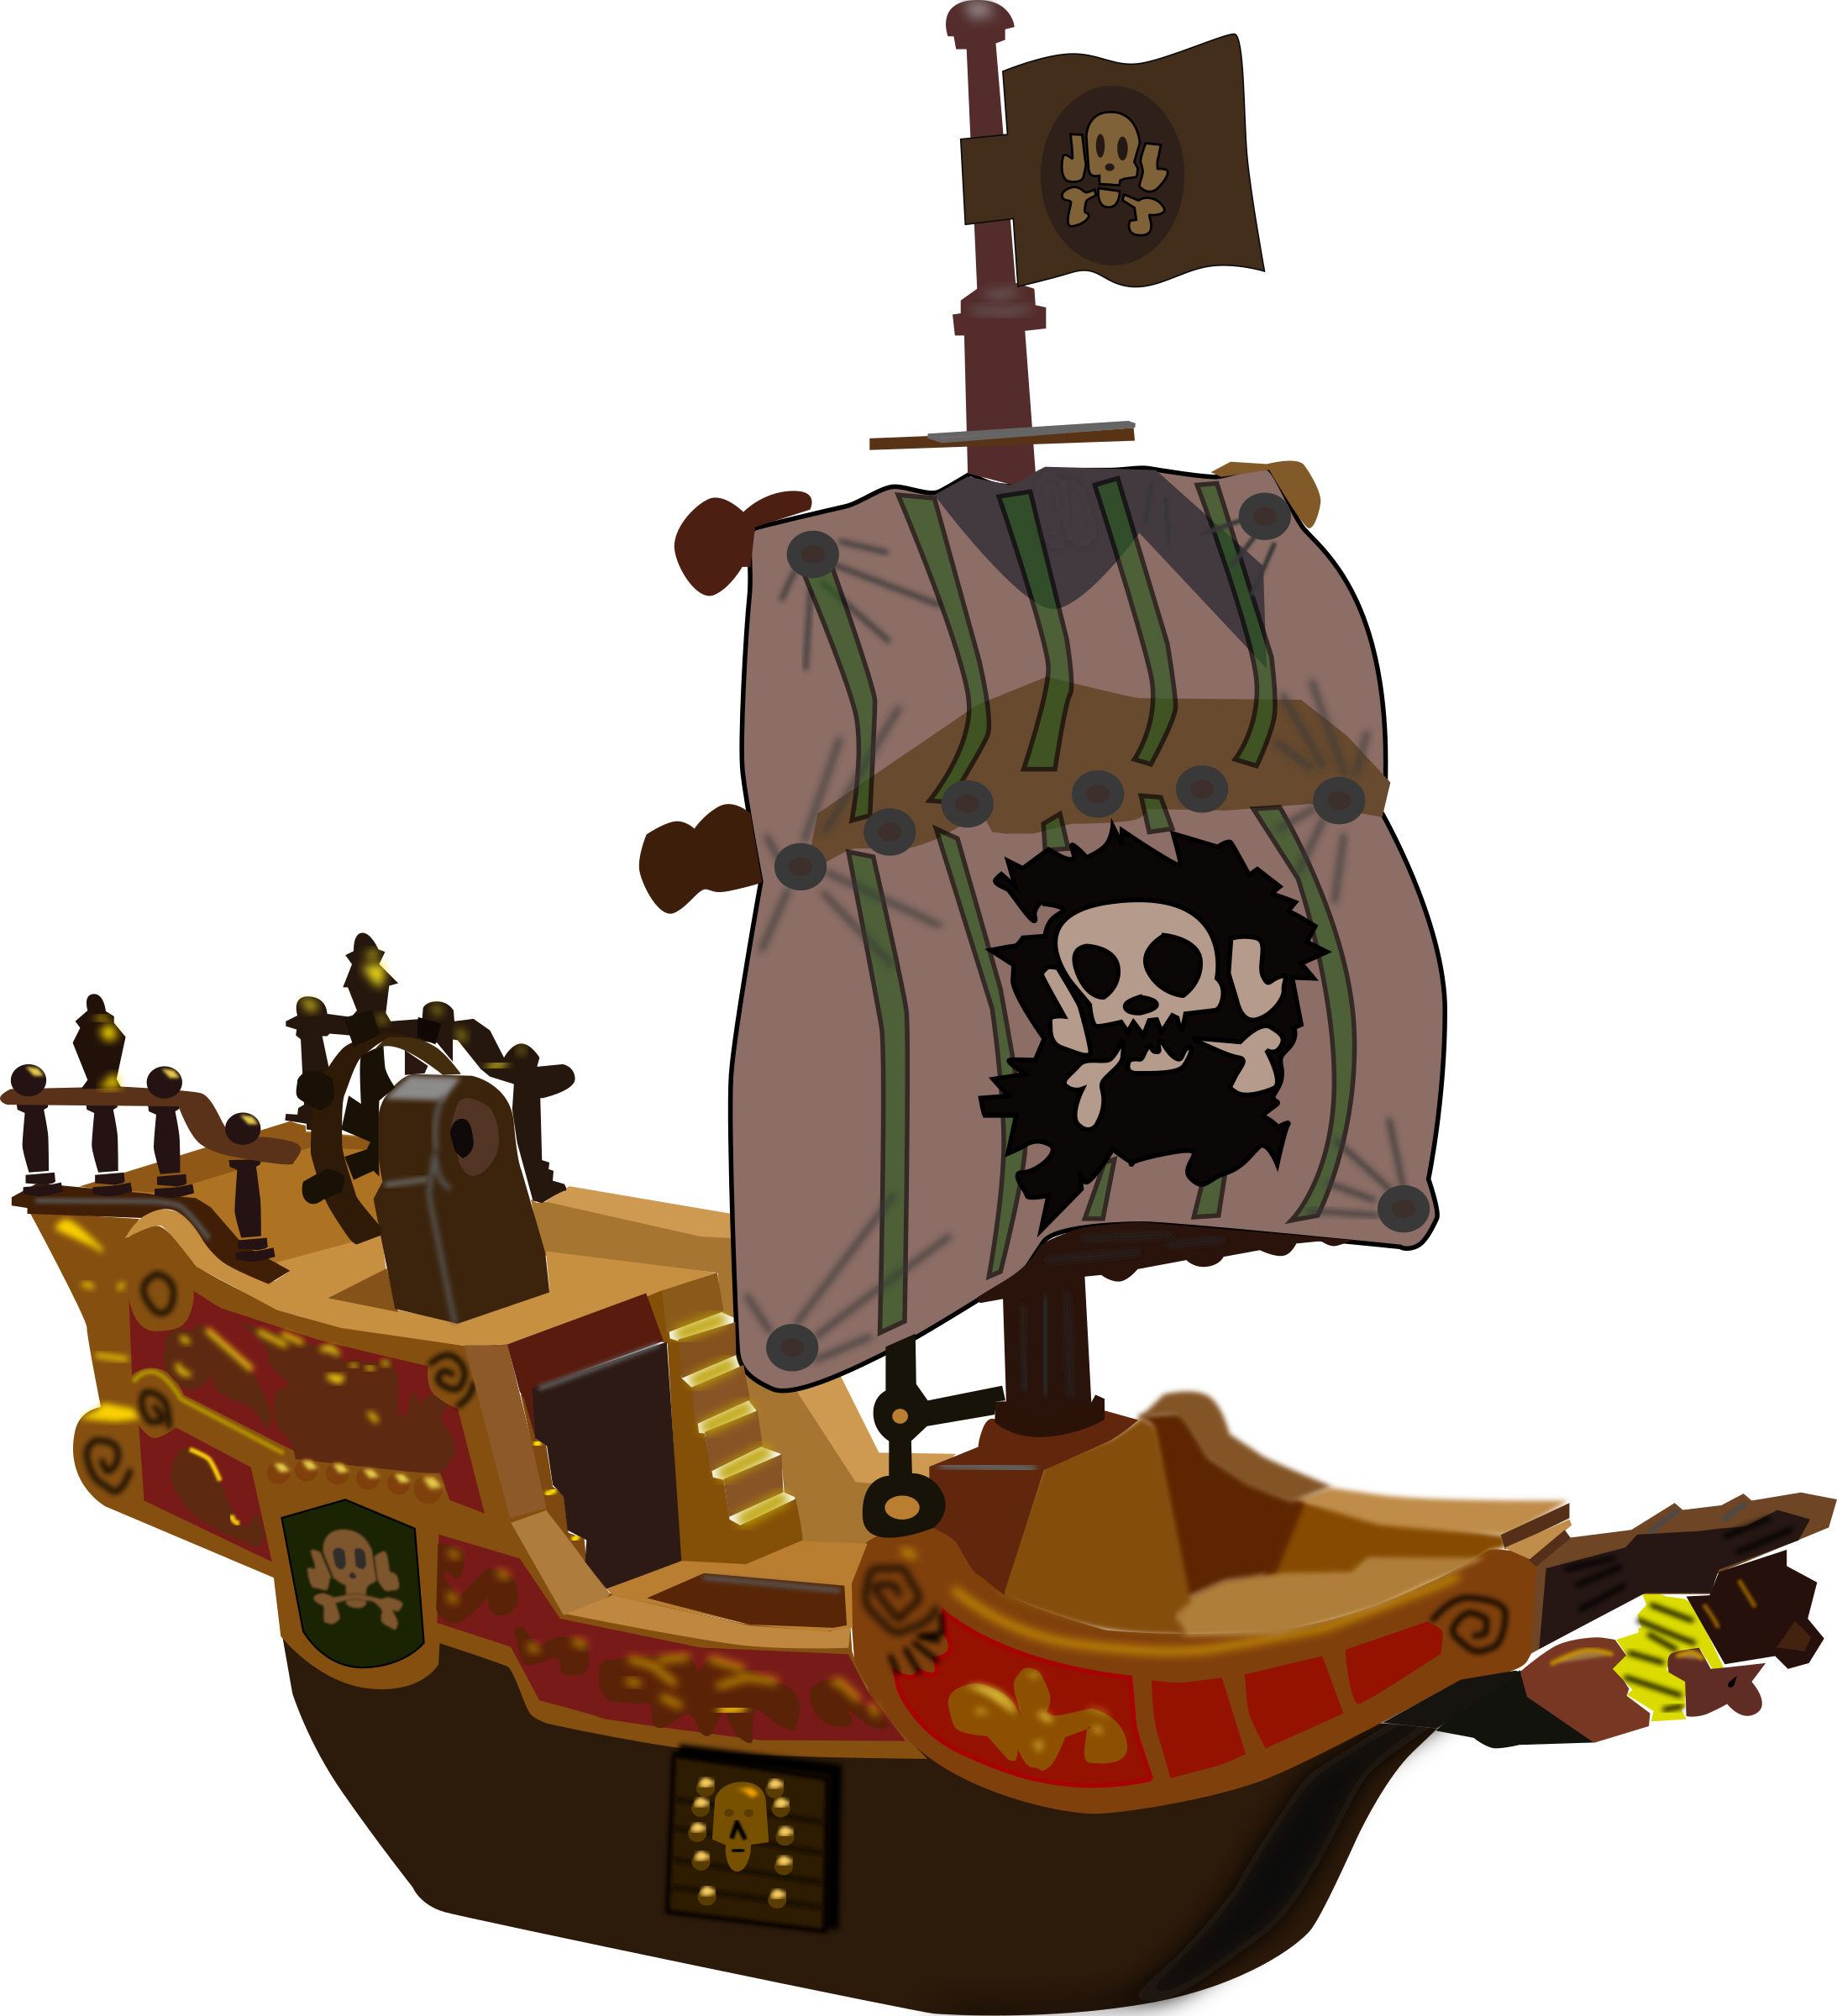 Pirate-ship by mystica